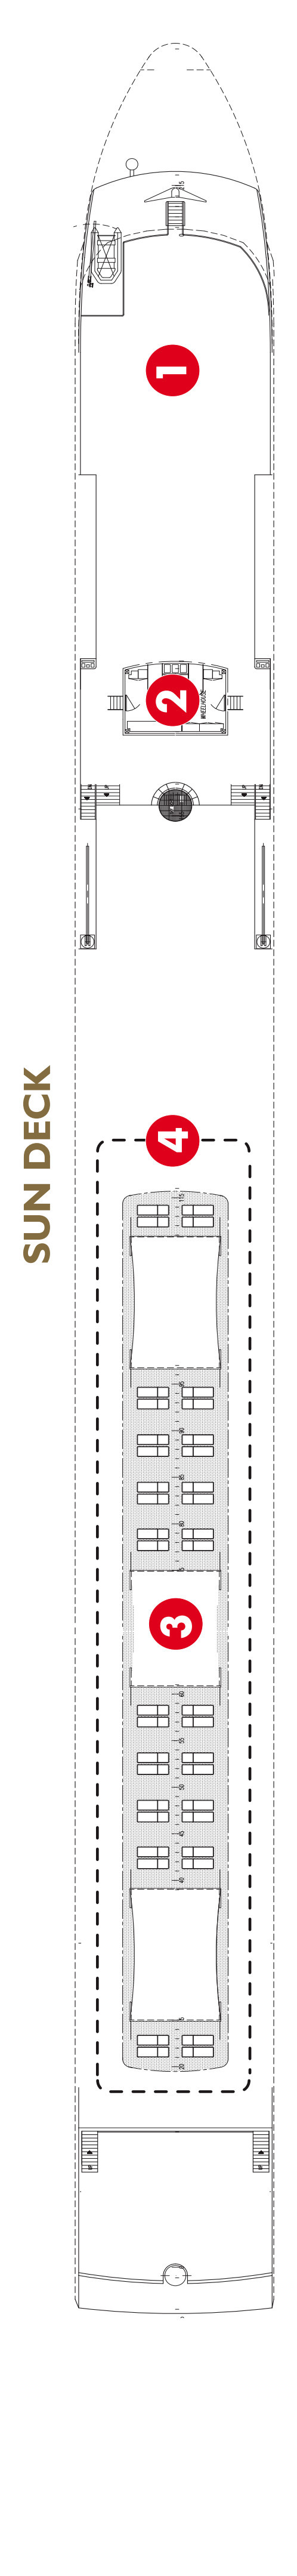 Scenic Ruby Sun Deck layout